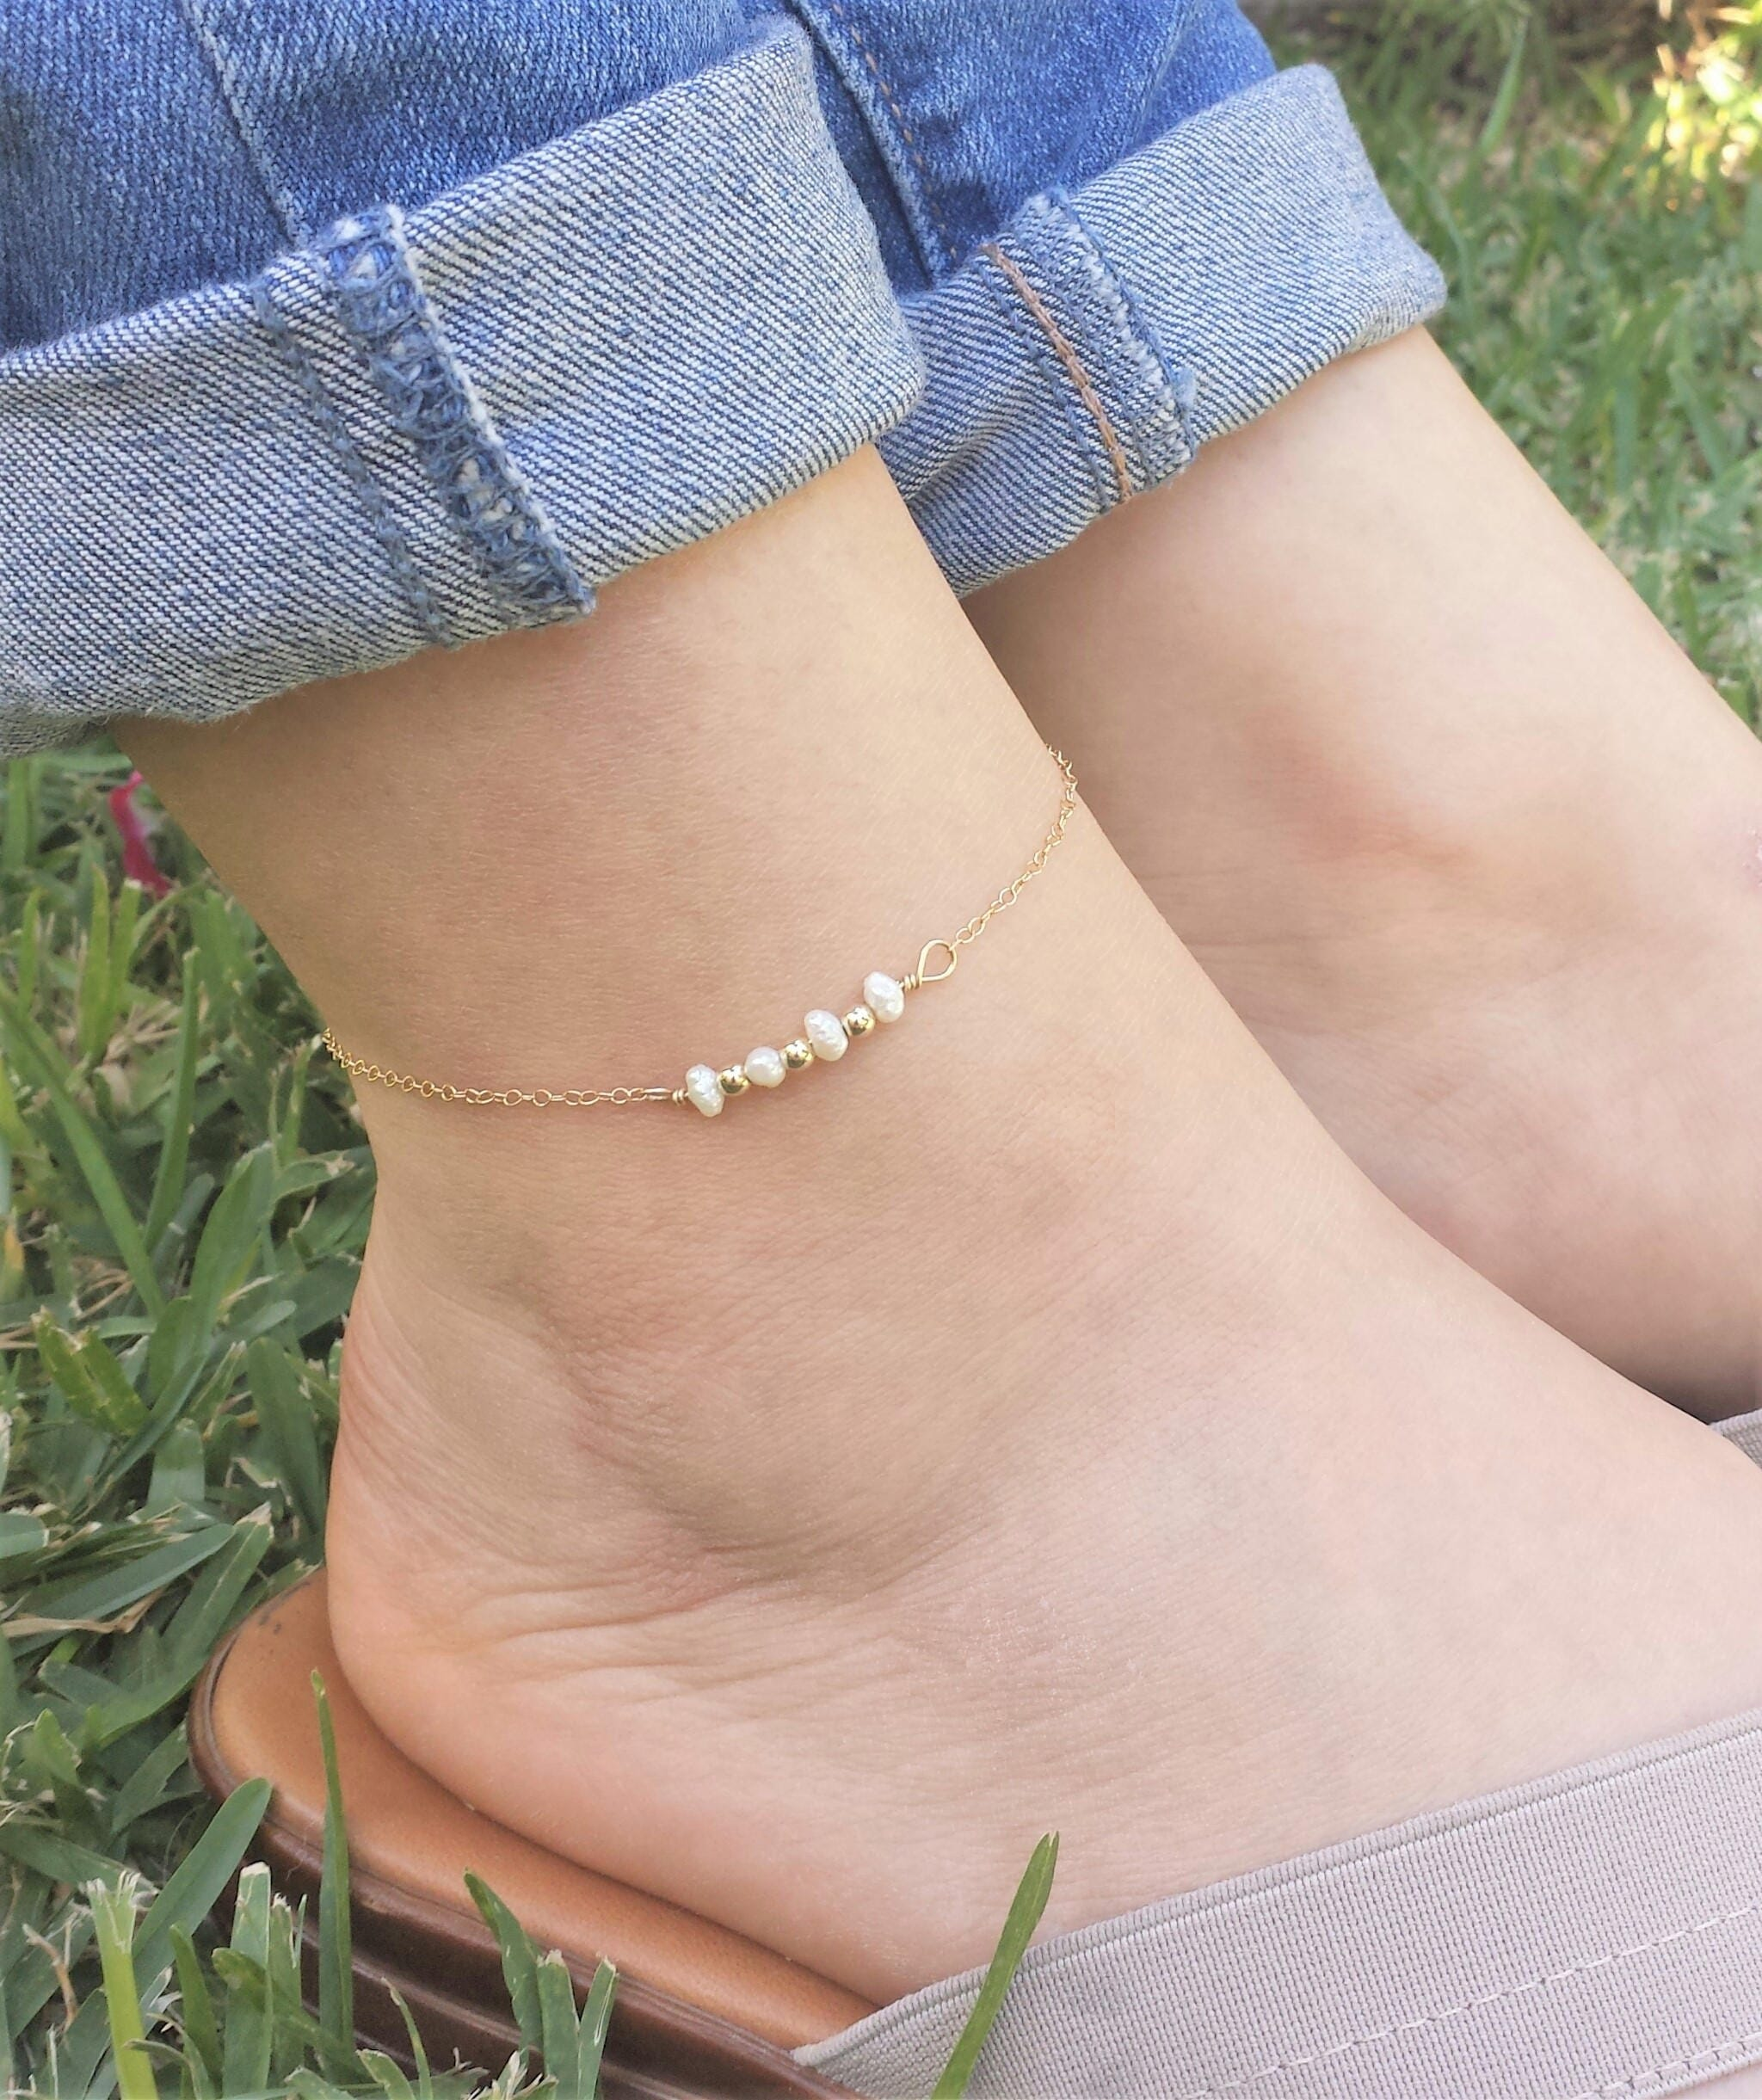 toe unique beach jewellery ksvhs ankle simple ring bracelets beads anklet on sale pretty